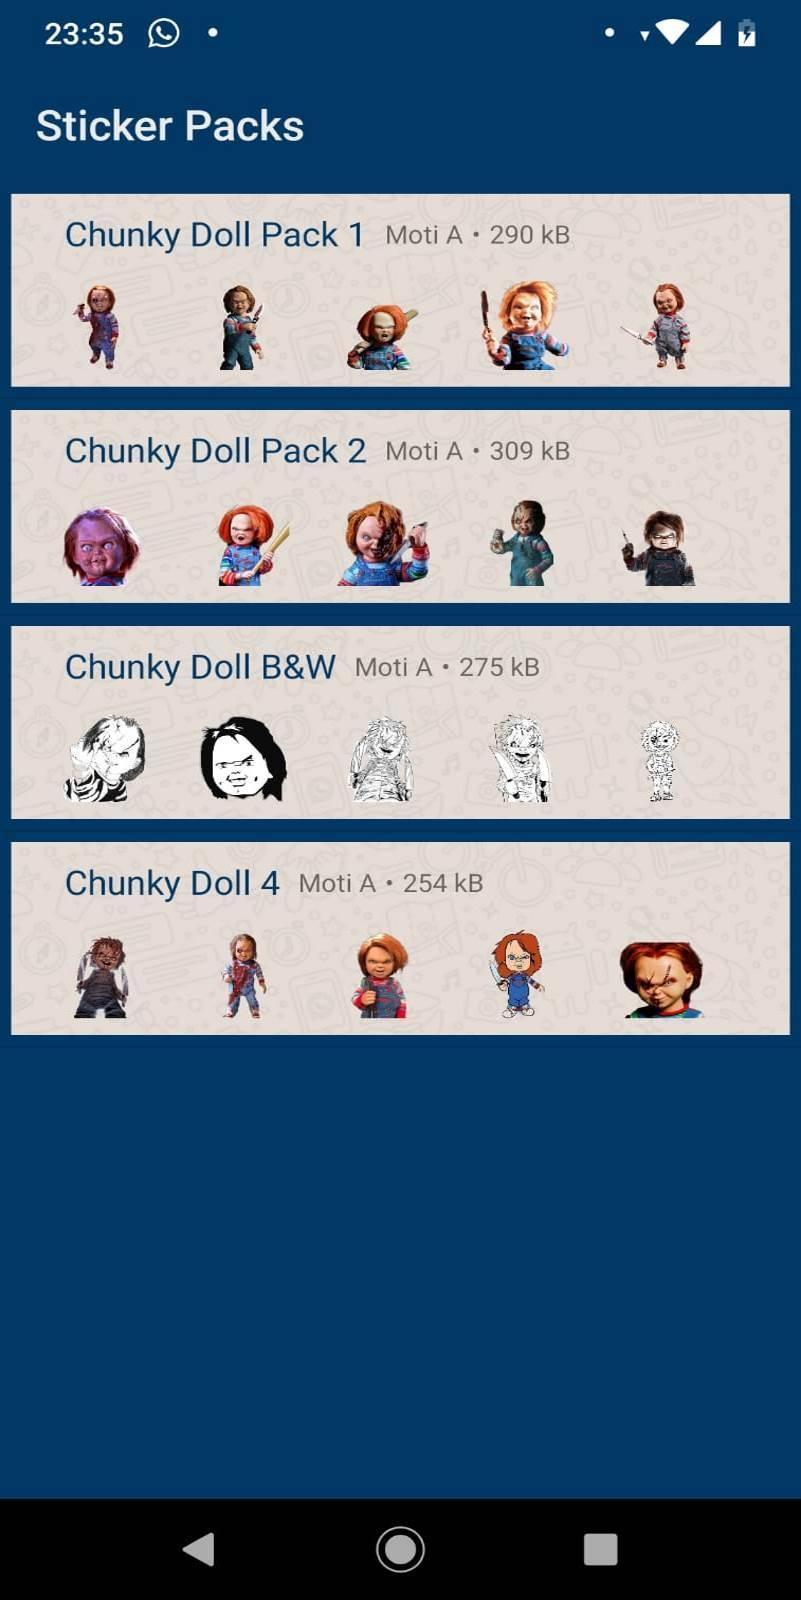 Stickers Chuky Doll For Whatsapp For Android Apk Download